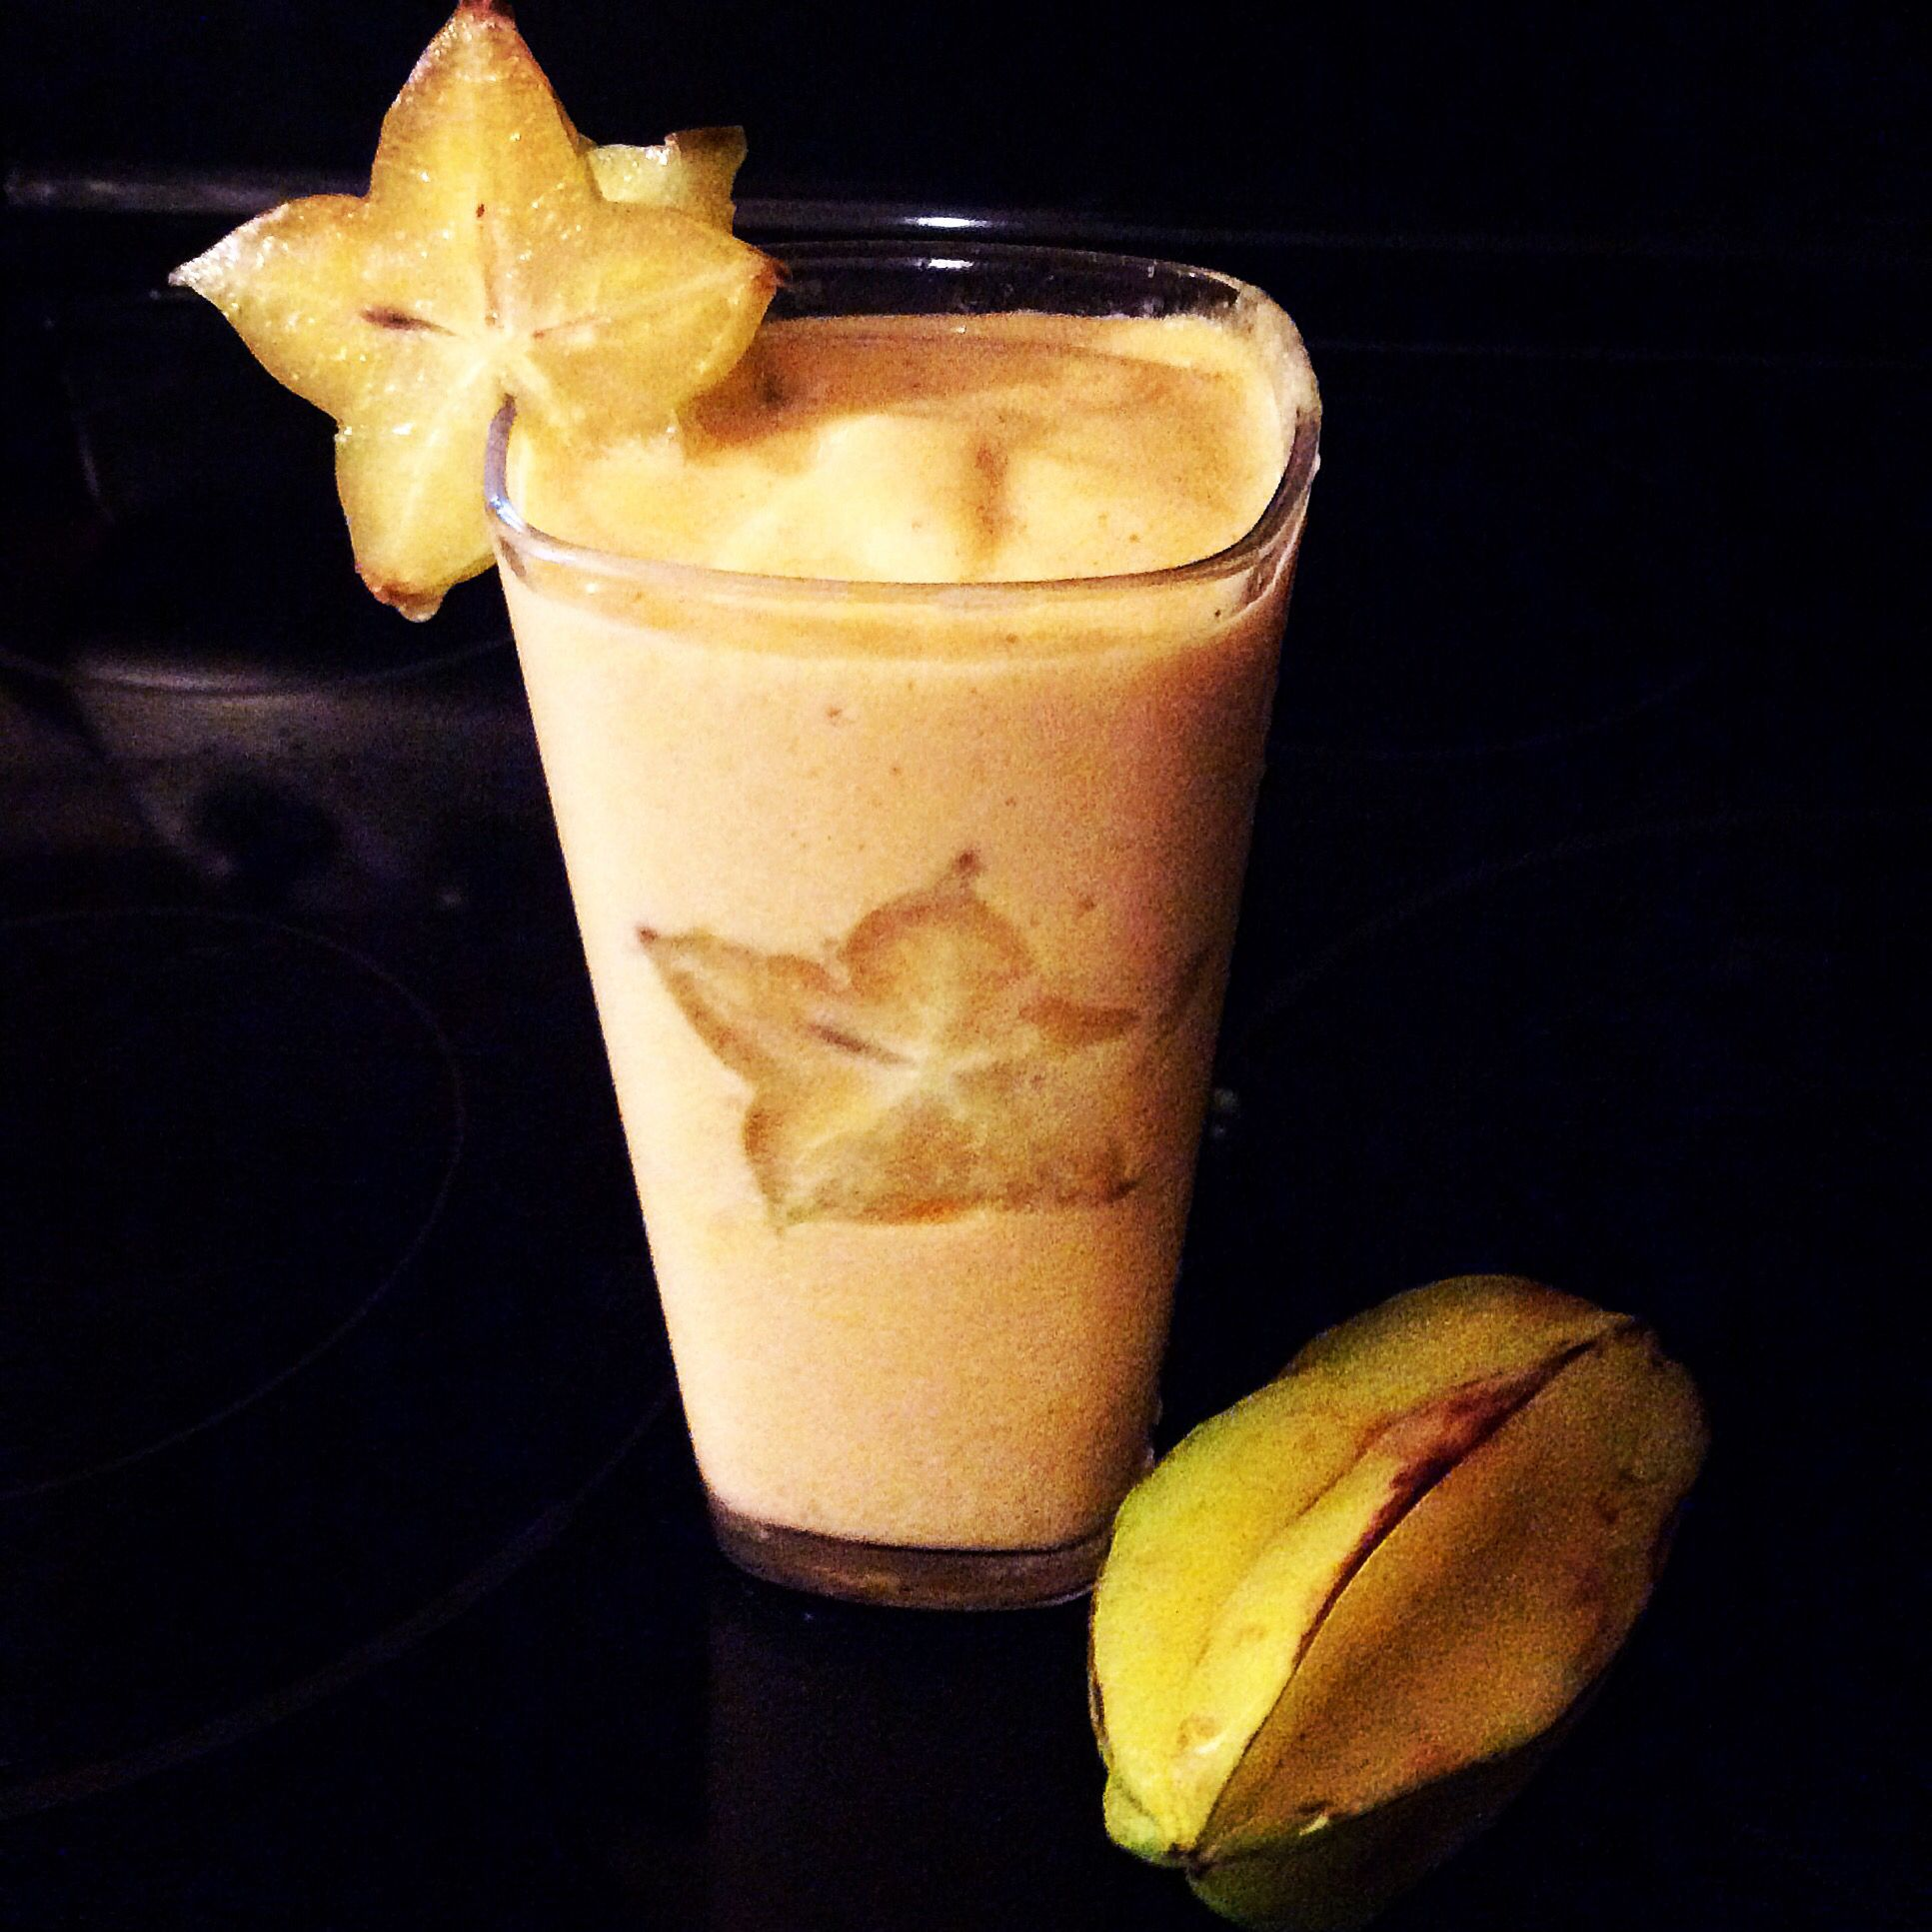 Star of the smoothies! ☺️ Star fruit for a refreshing smoothie!